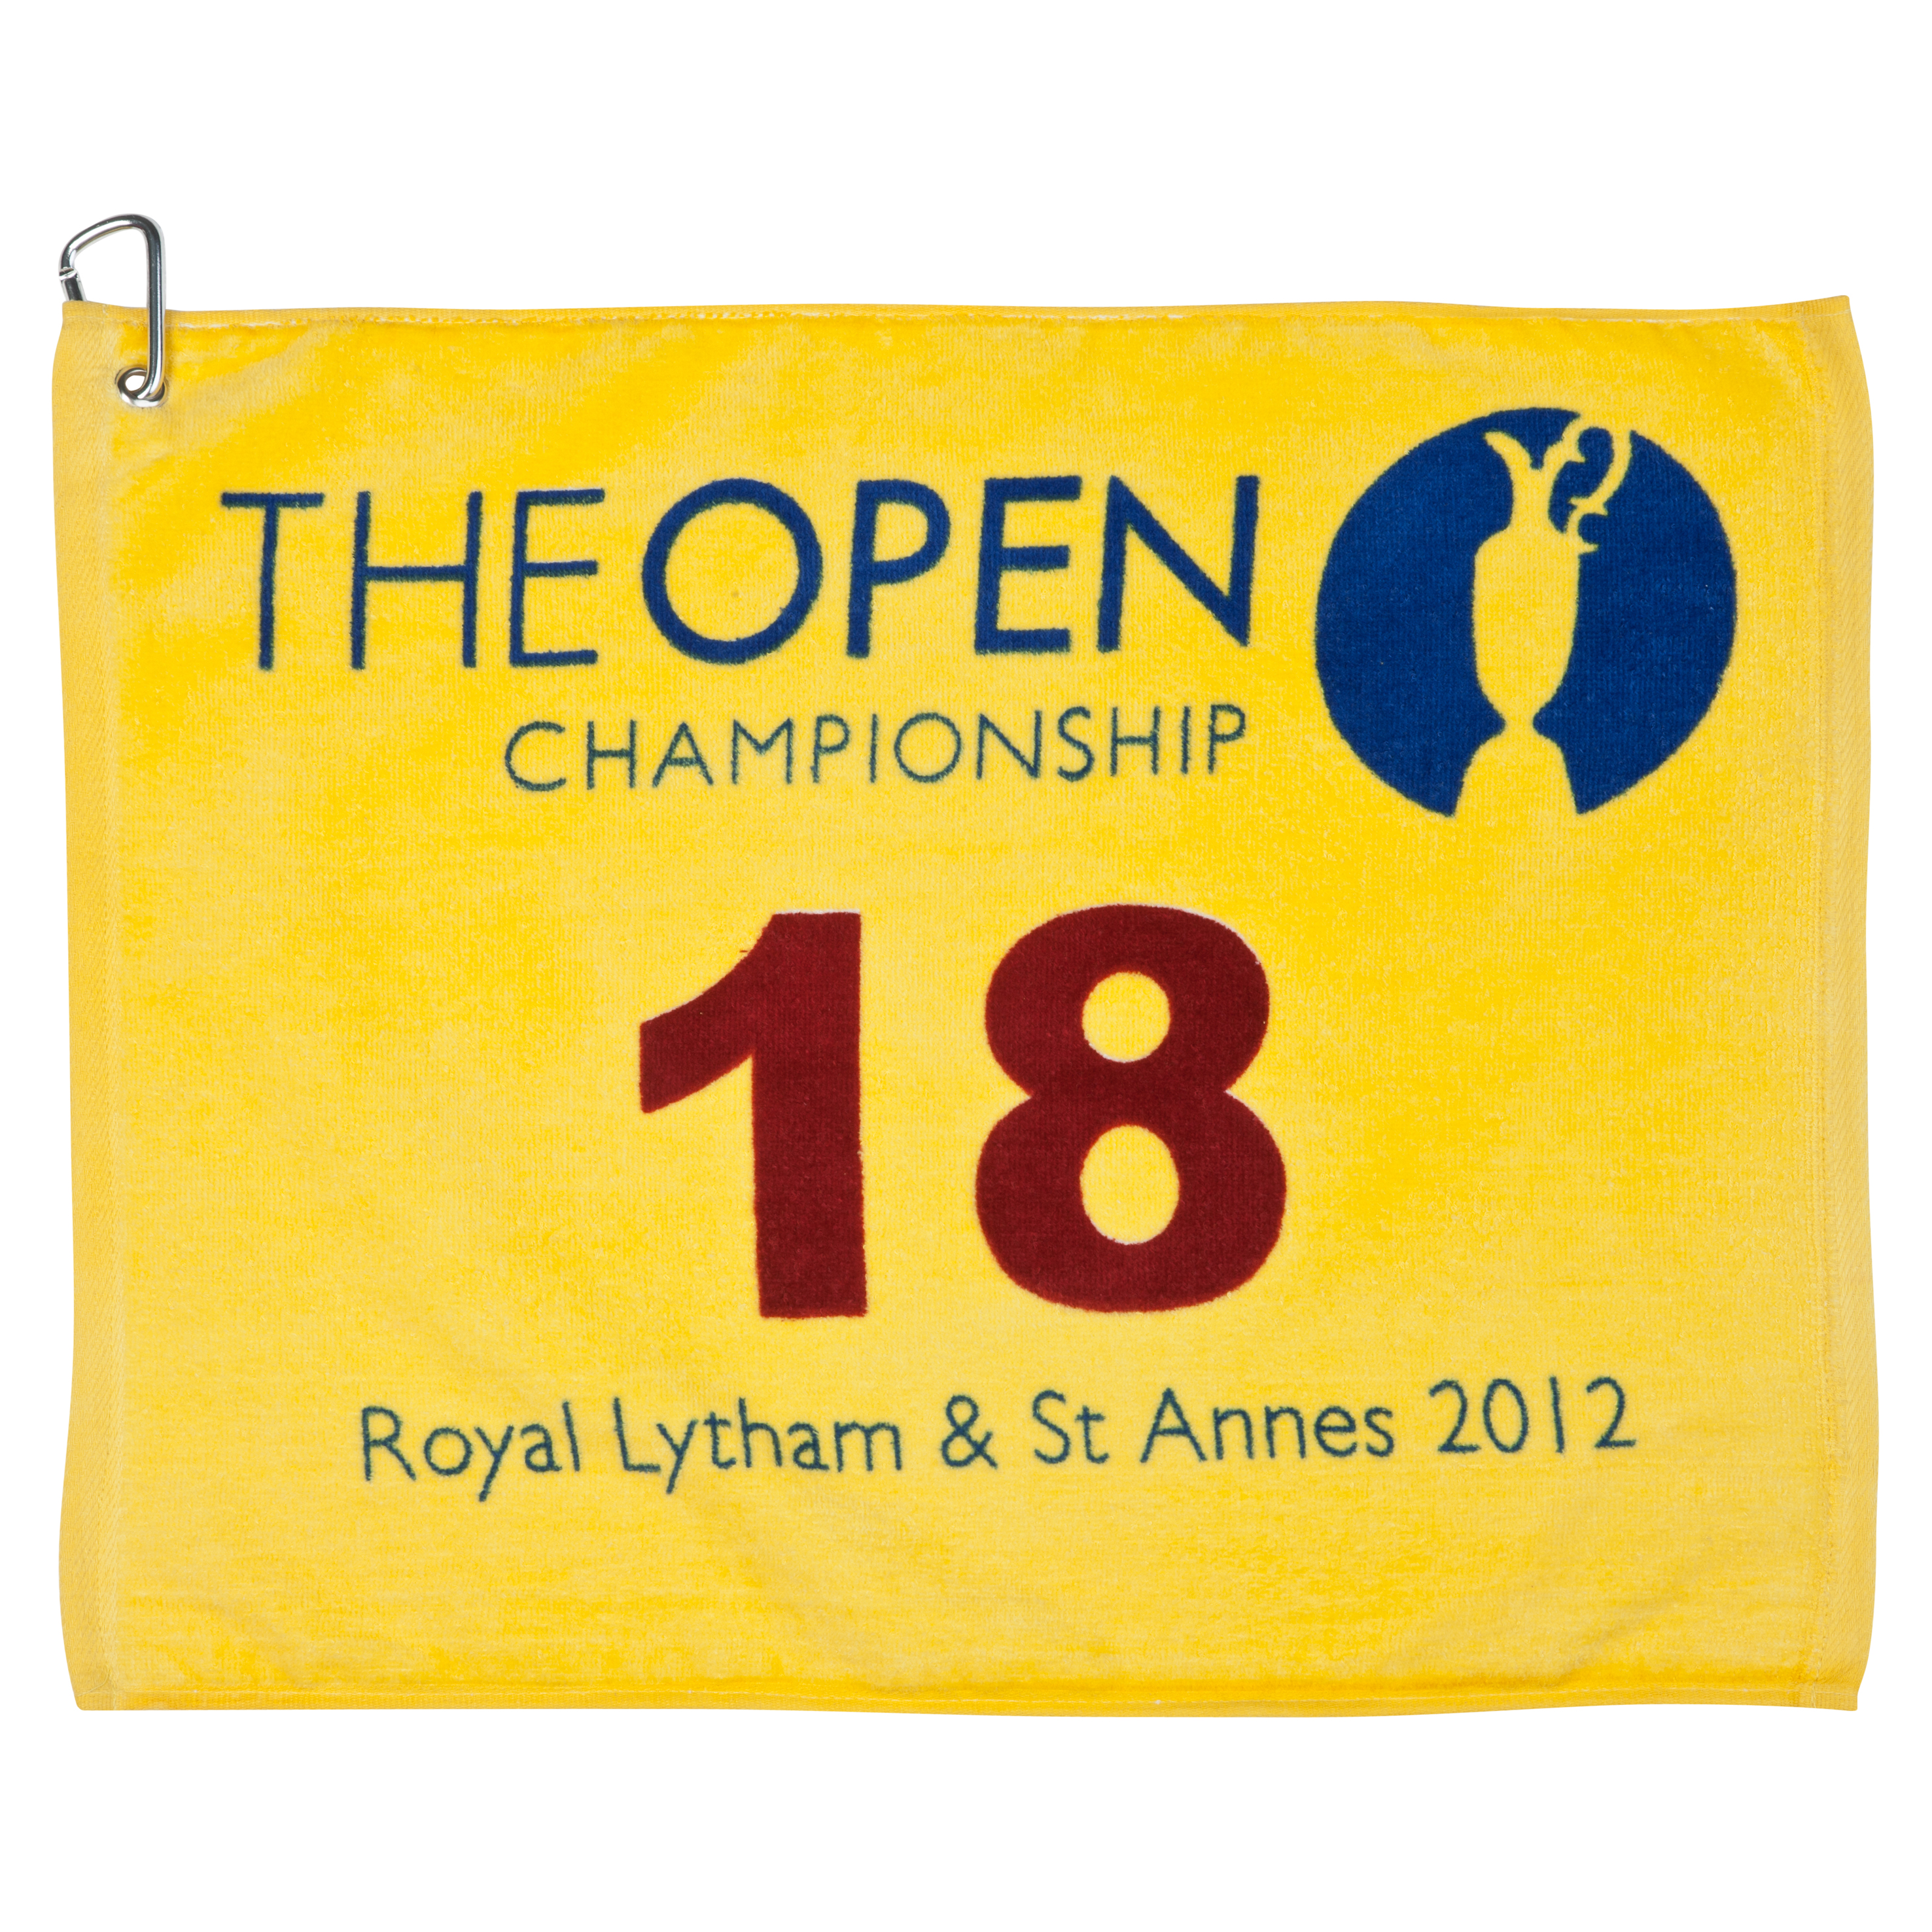 The Open Championship 2012 Royal Lytham and St. Annes 18th Green Yellow Pin Towel